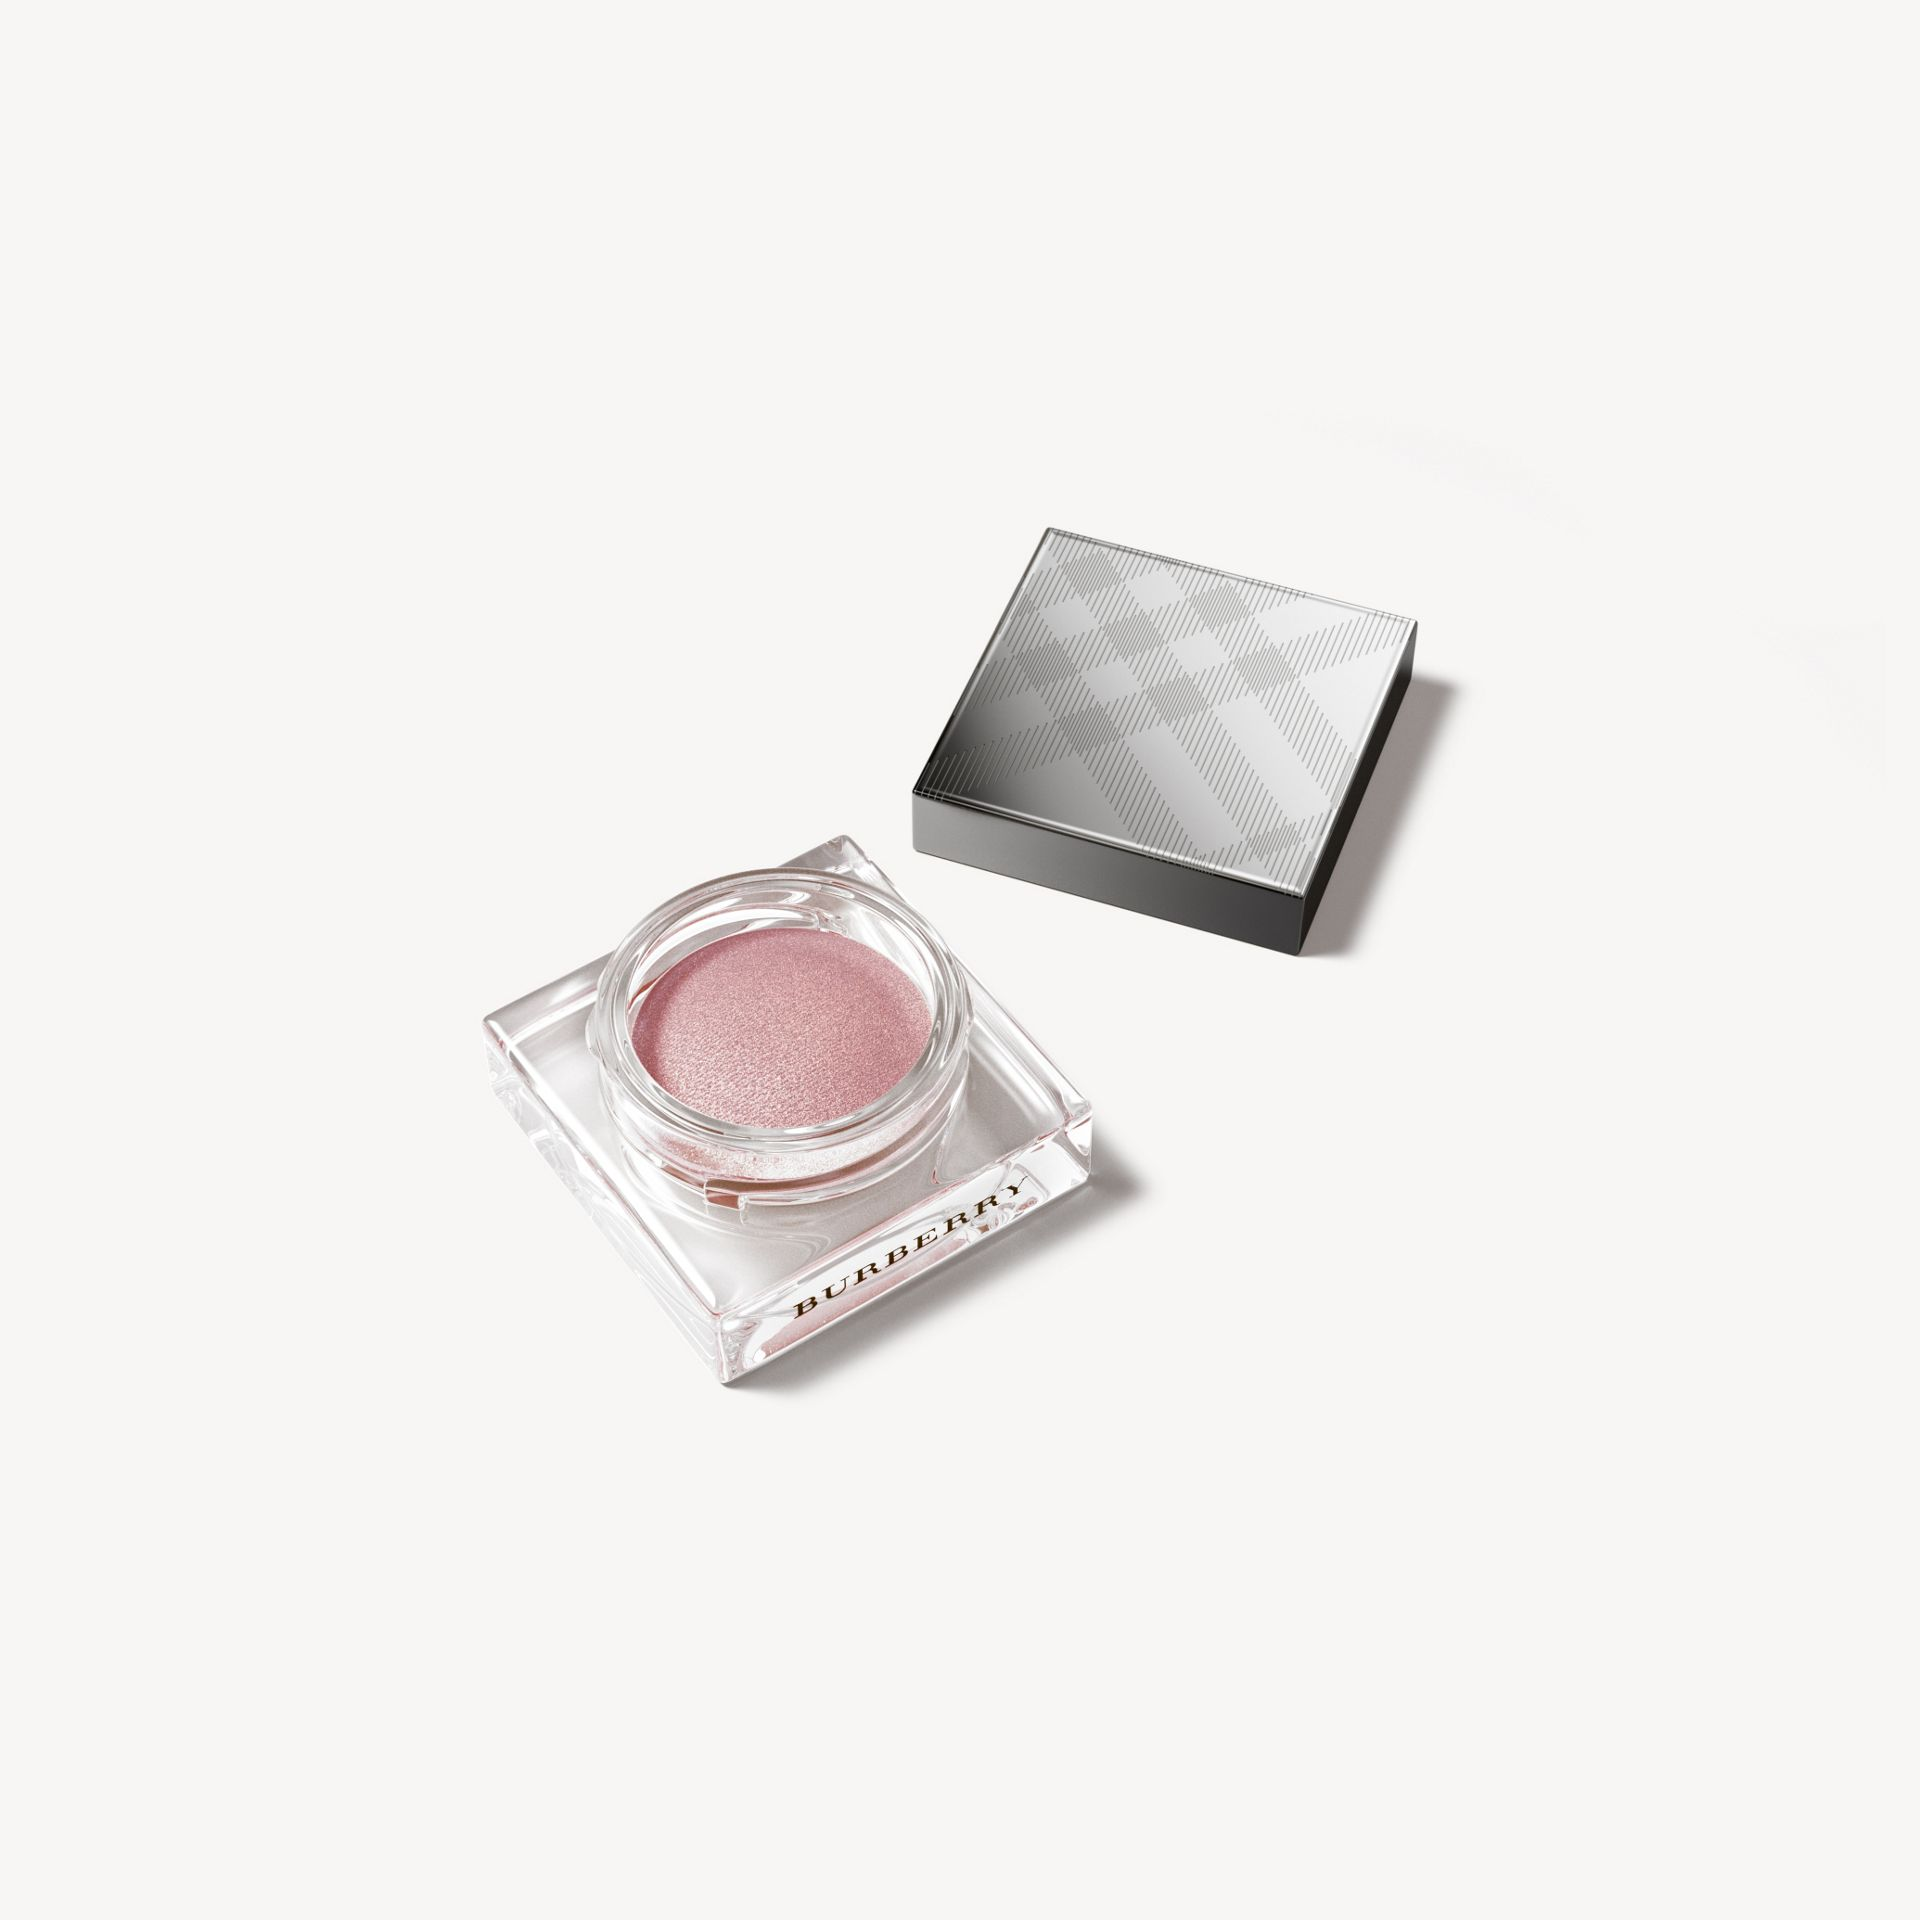 Dusty pink № 104 Тени для век Eye Colour Cream, Dusty Pink № 104 - изображение 1